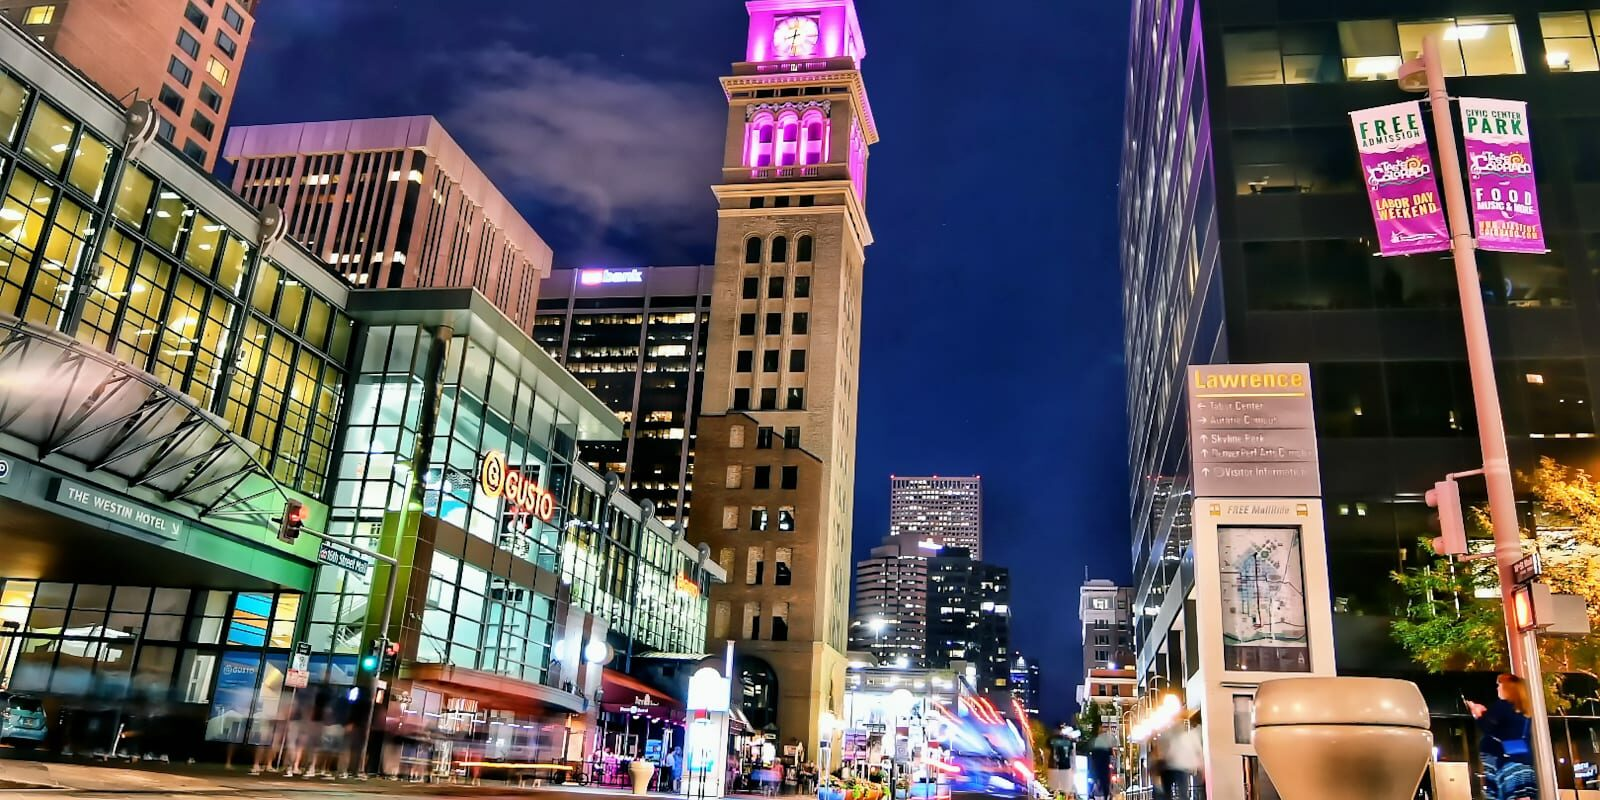 Downtown Denver Colorado Night Cityscape 16th Street Mall Clocktower